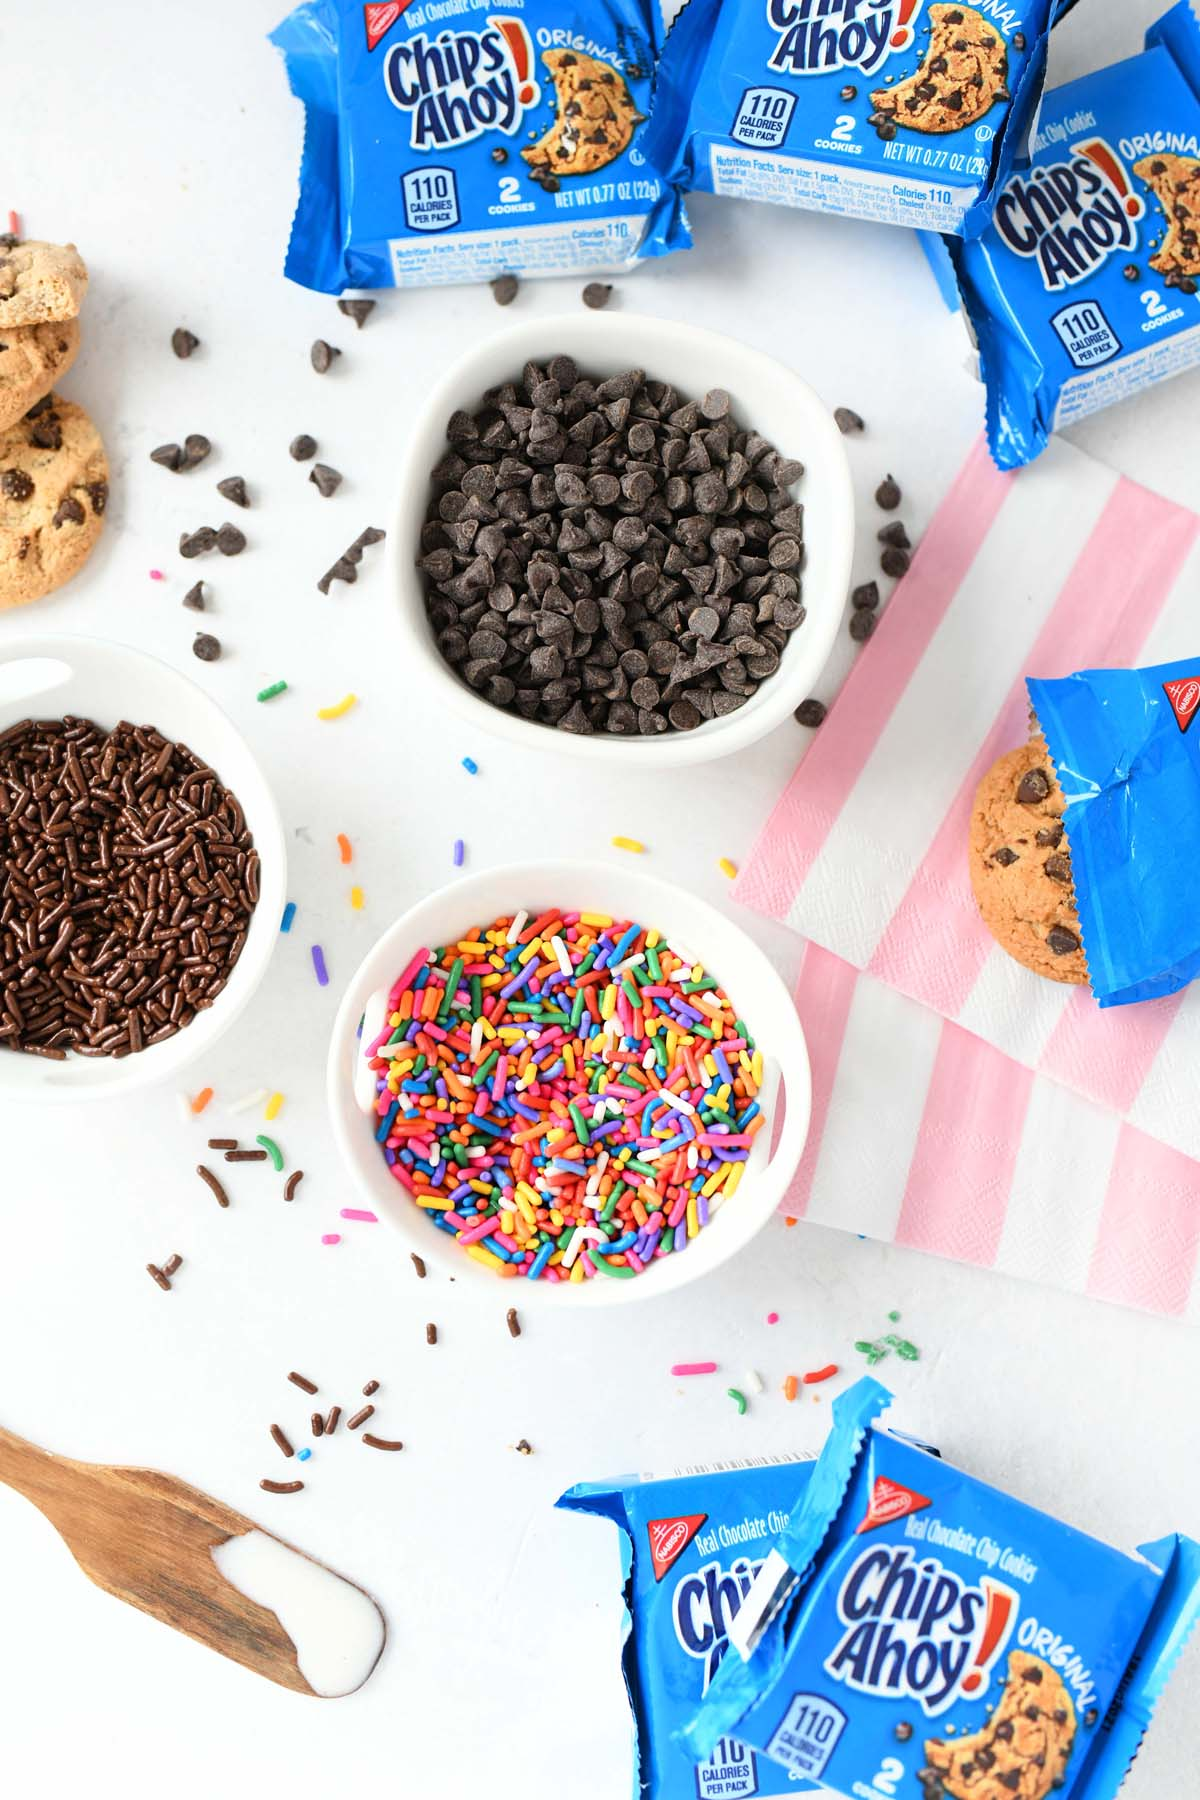 Sprinkles, mini chocolate chips, and Chip Ahoy! packs on a white table.